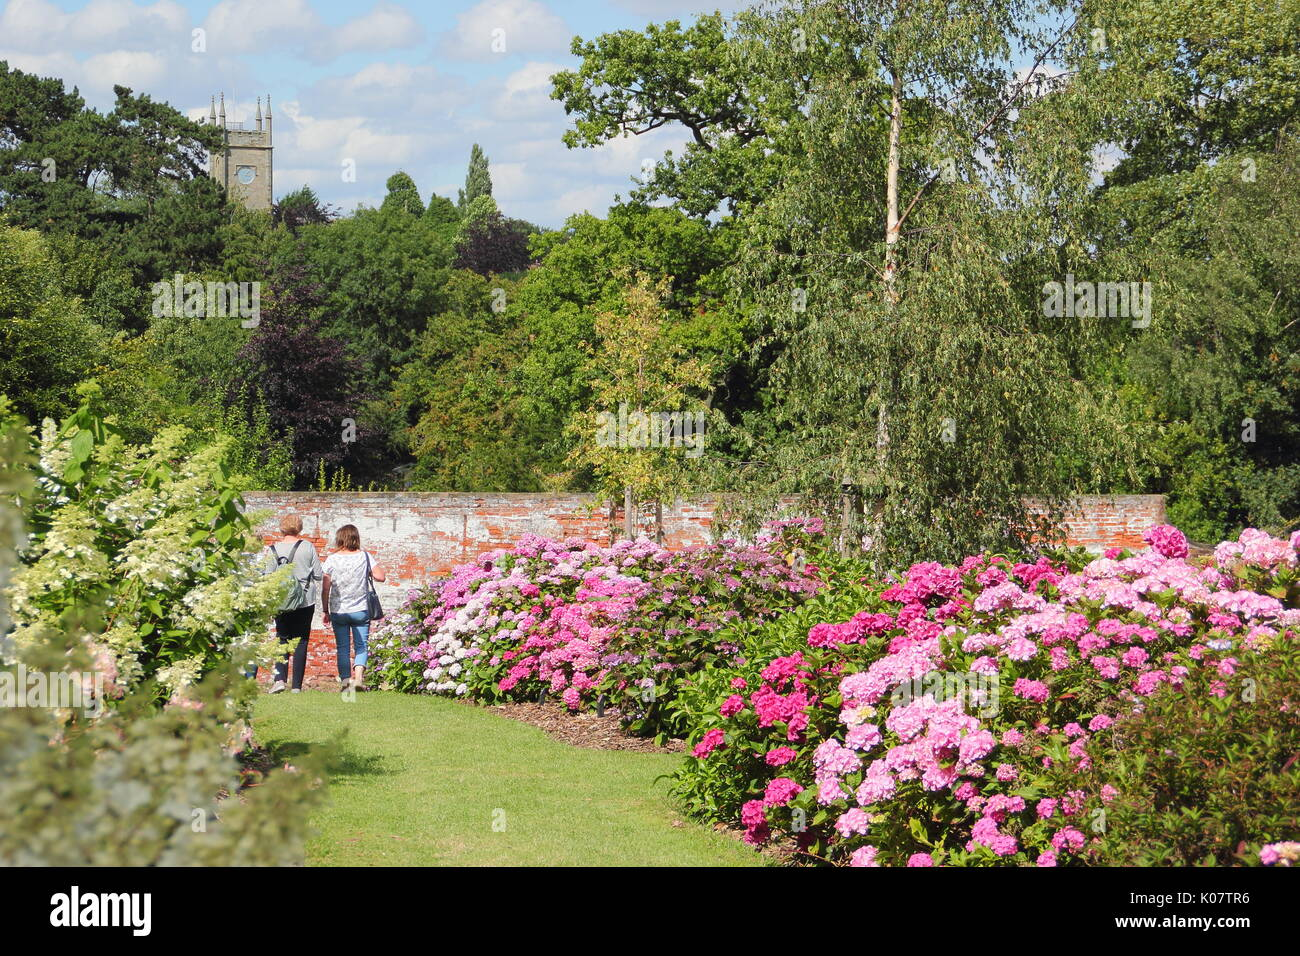 Visitors peruse the National Collection of Hydrangeas in full bloom in the walled garden at Darley Park, Derby, England, UK - August - Stock Image